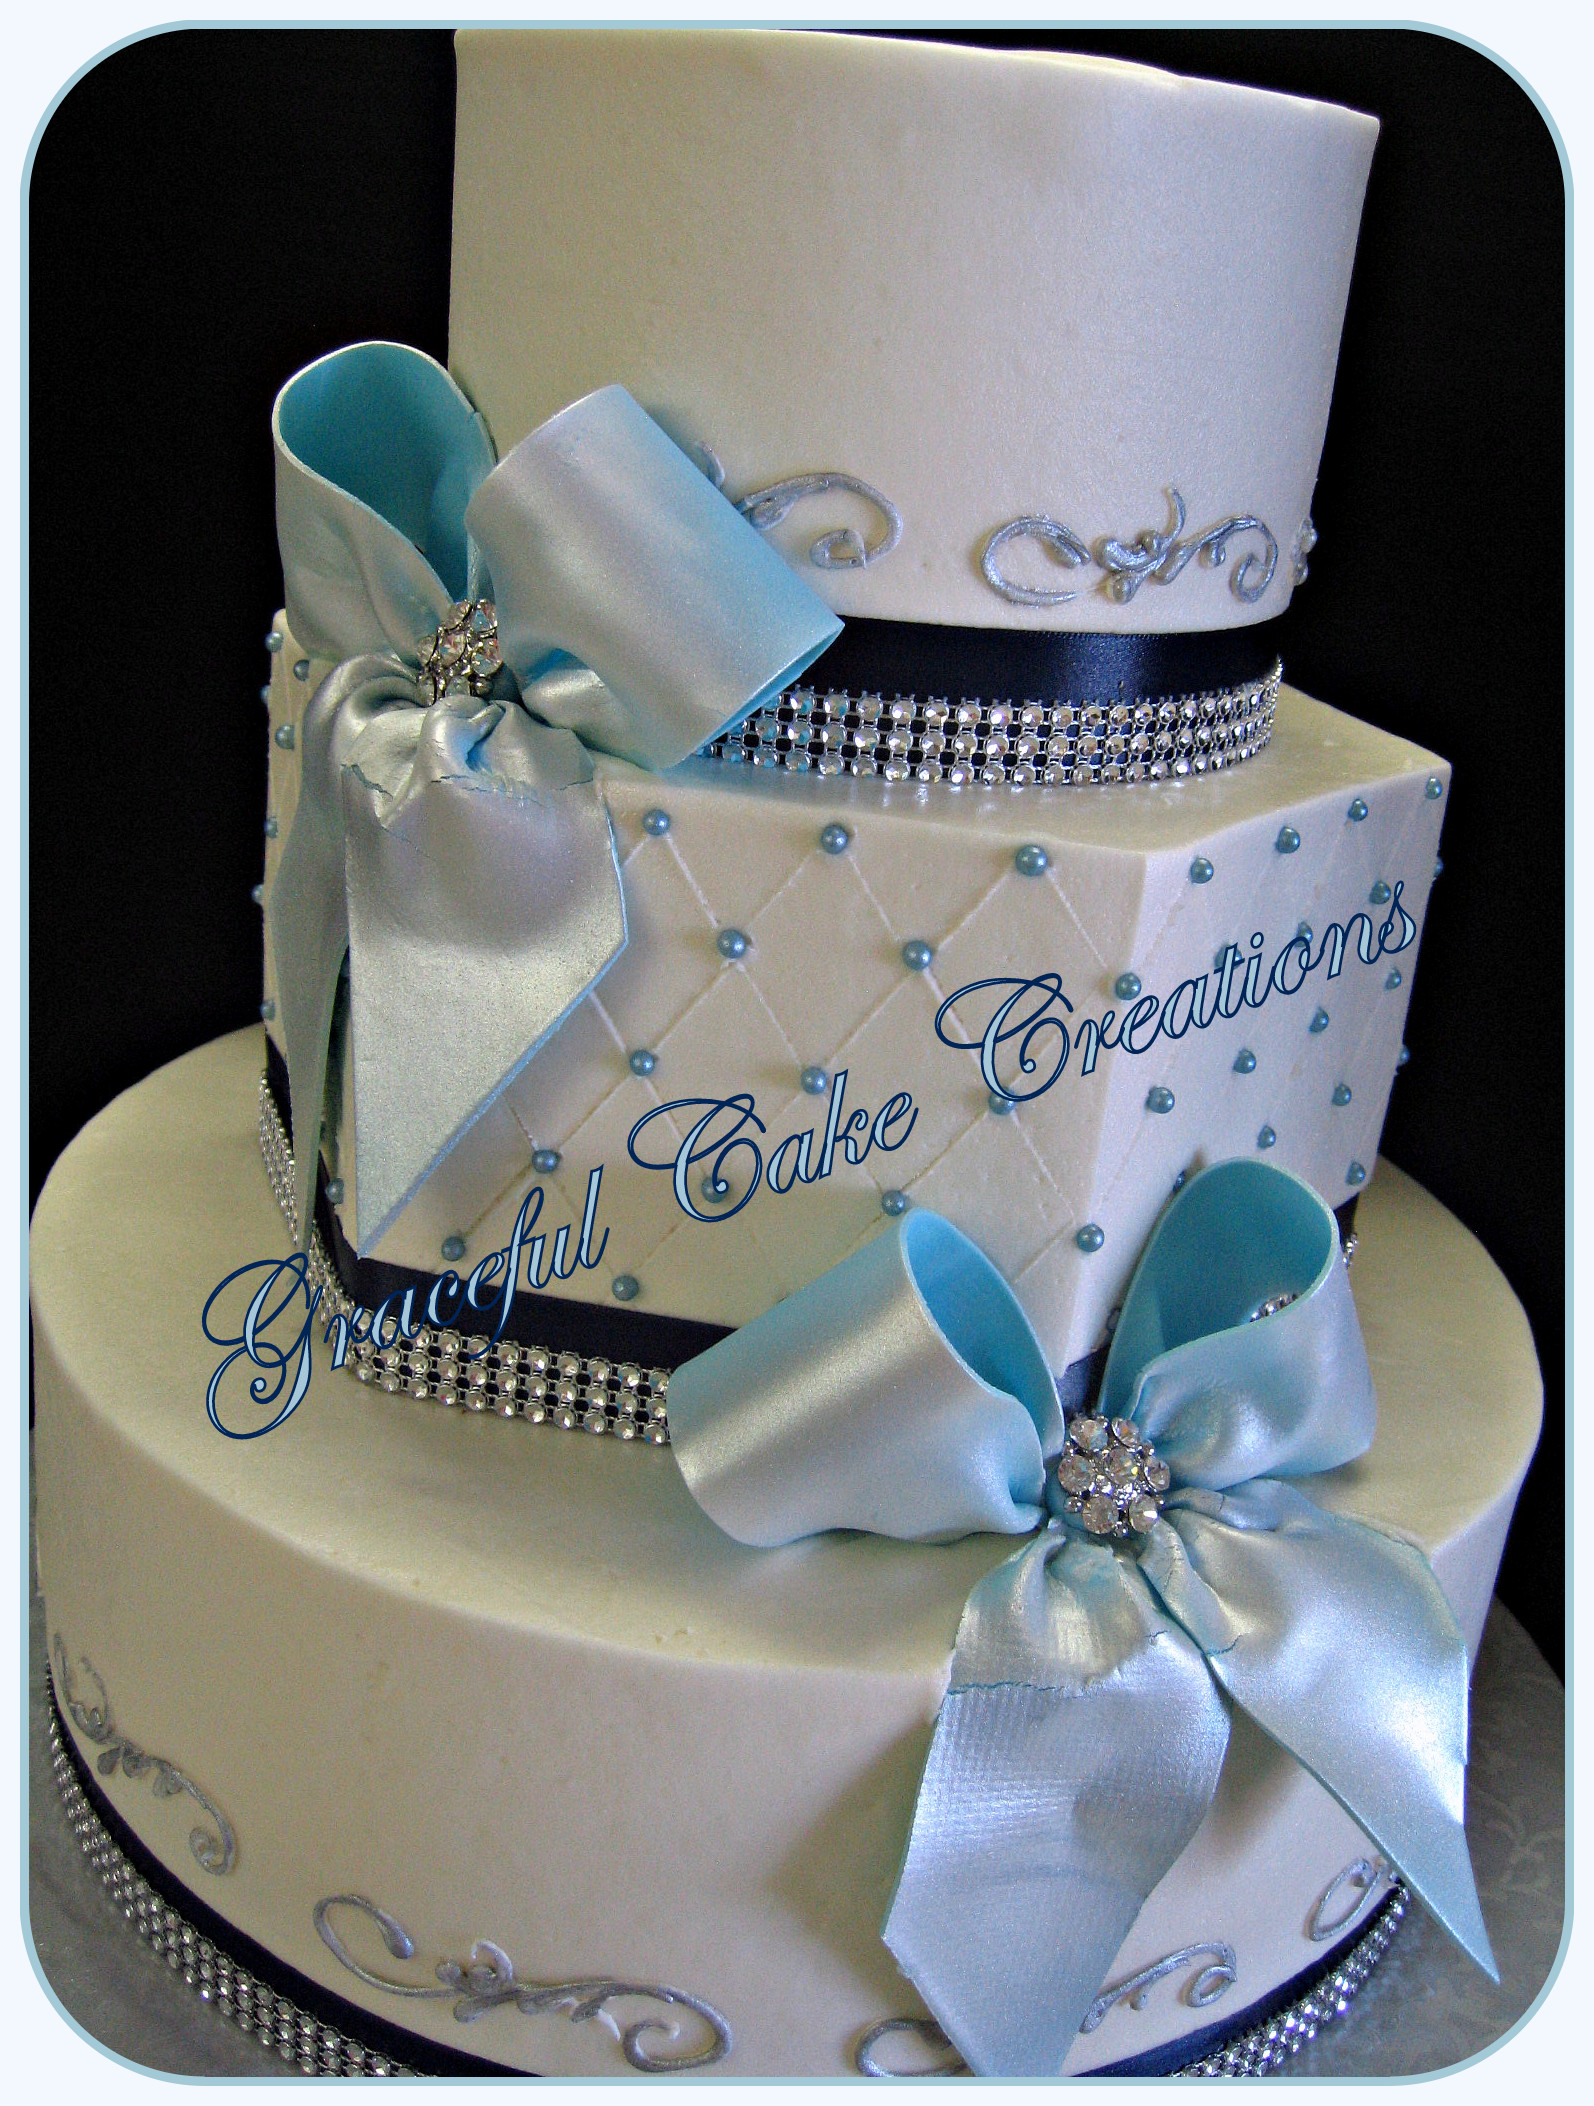 Elegant White Wedding Cake with Navy Blue and Bling Ribbon